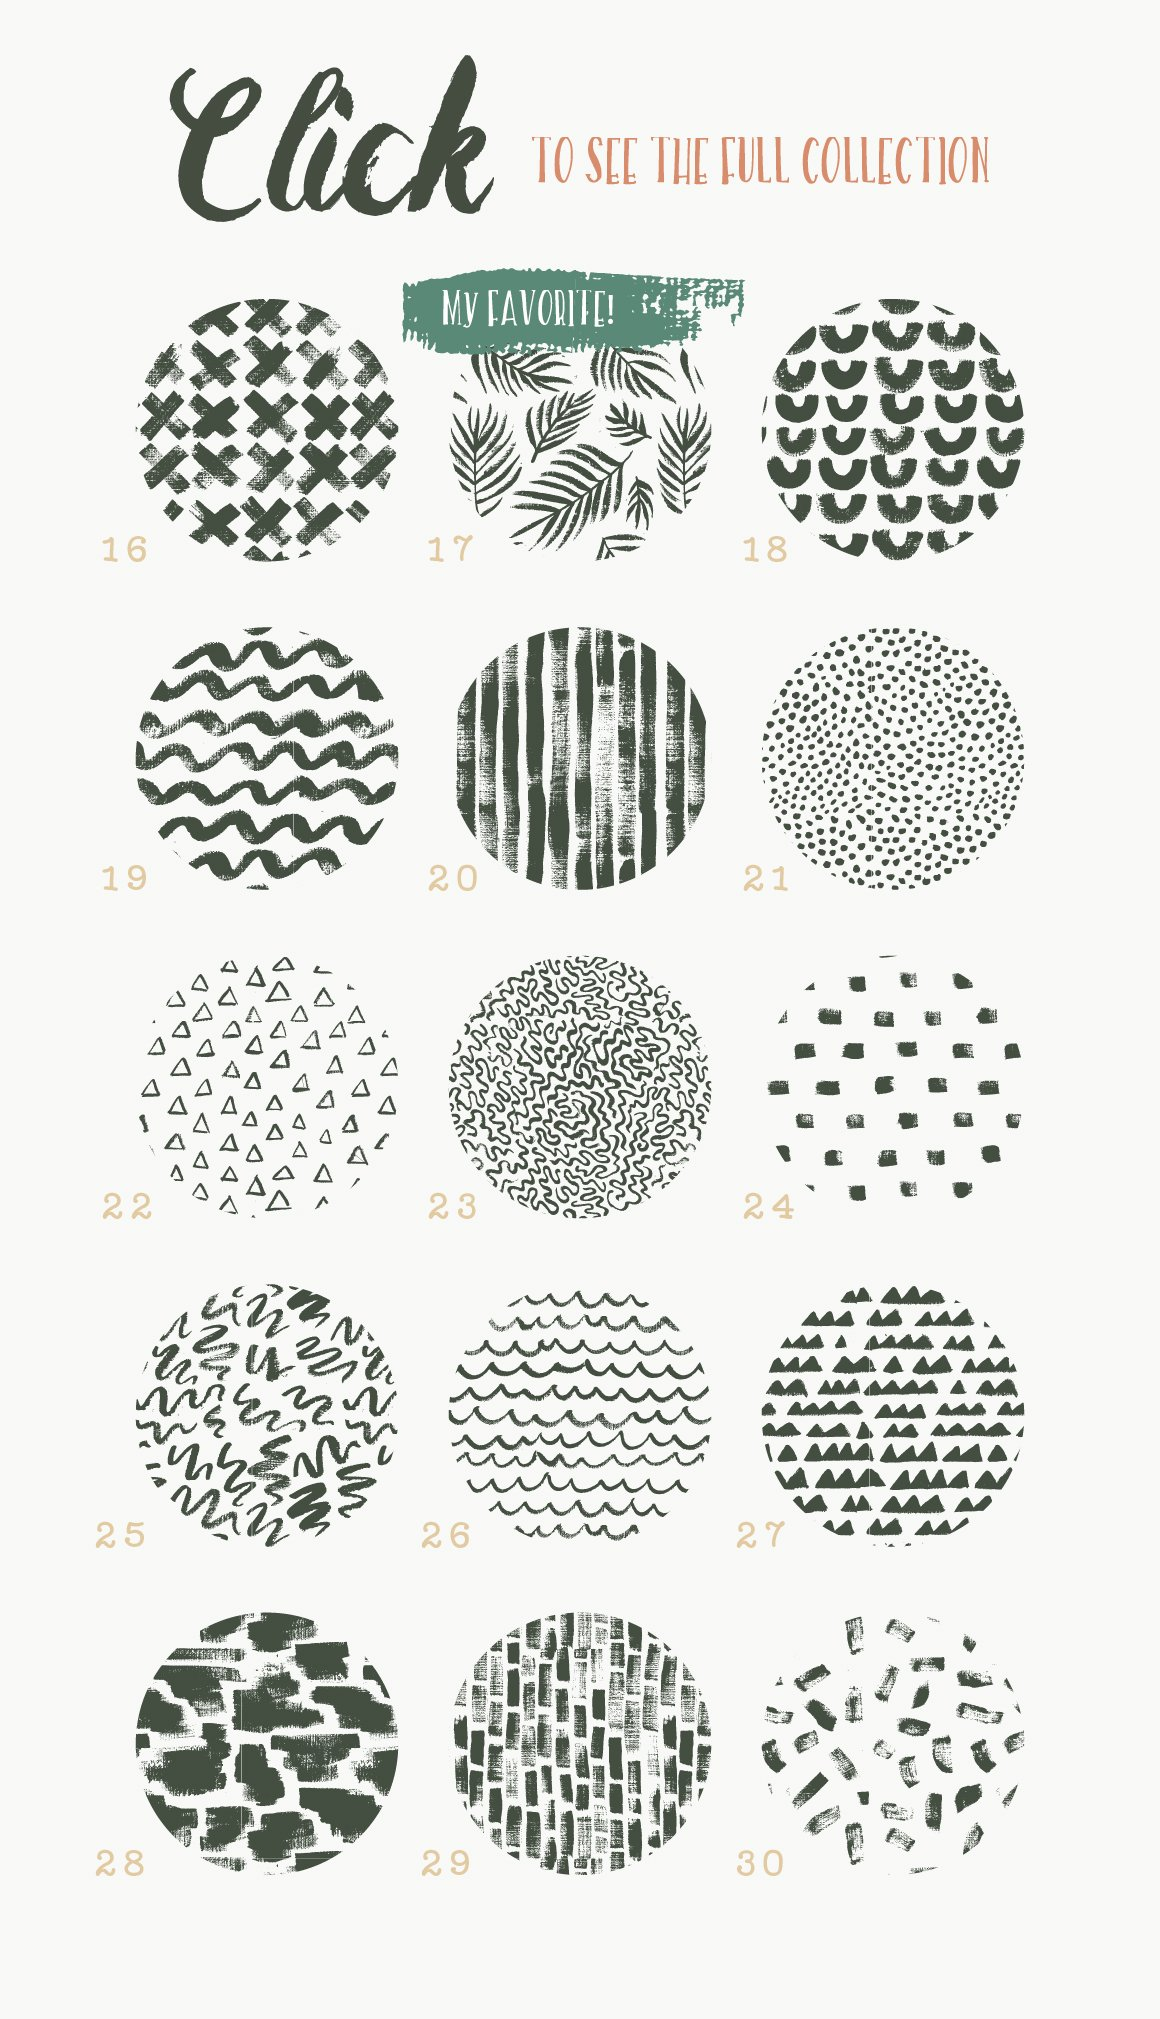 30款植物、纹理手绘矢量图案下载 Handmade Brush Pattern Collection [ai,esp,jpg,png]插图(7)